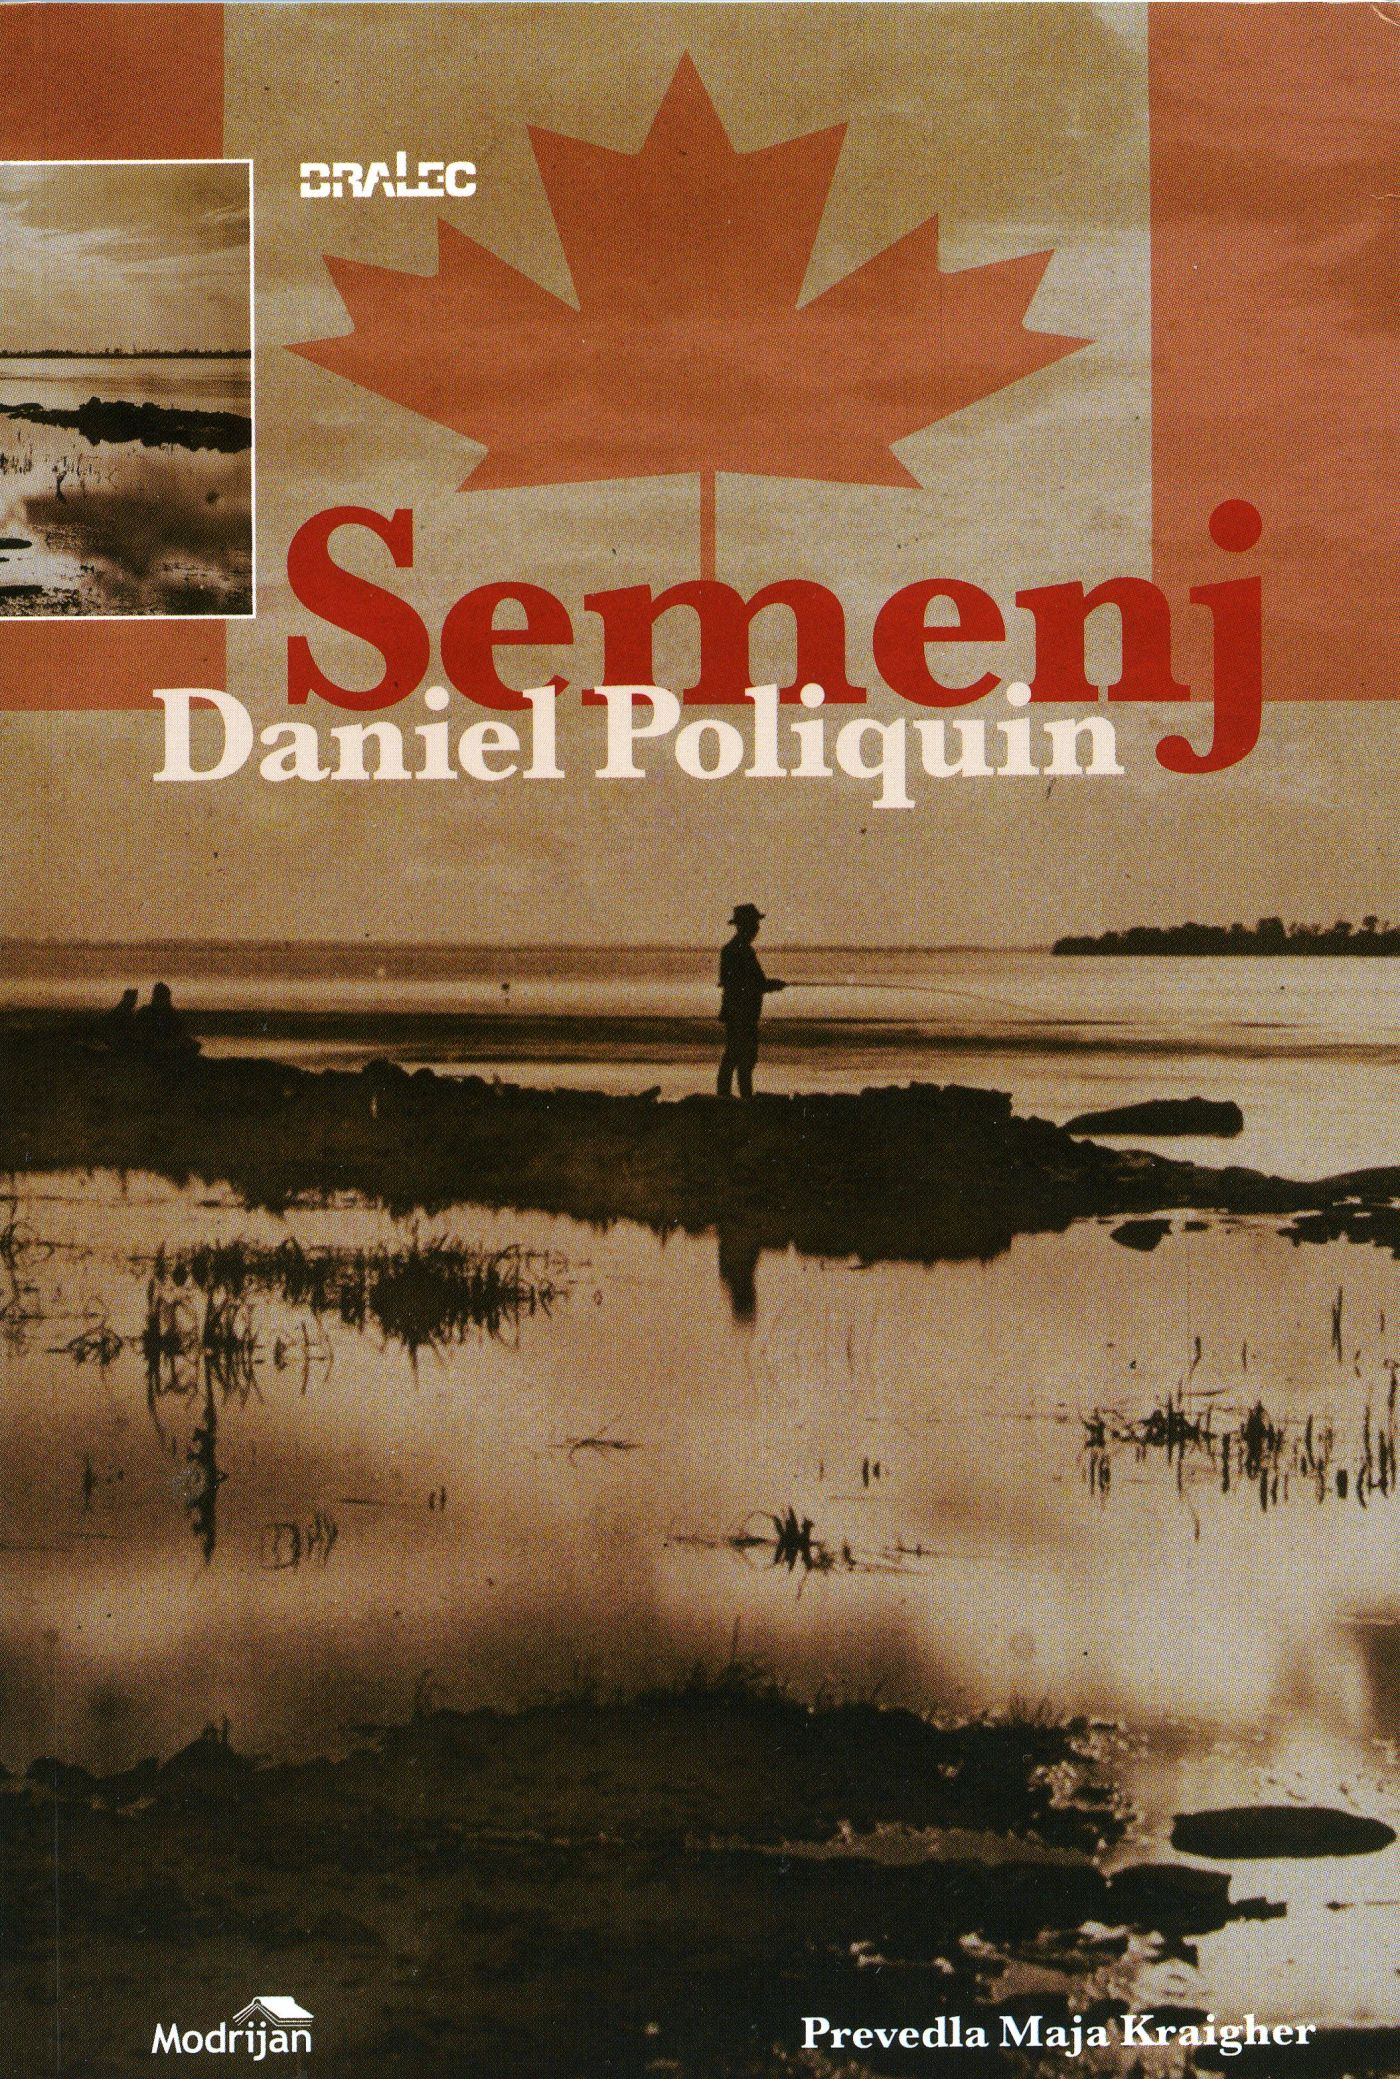 Cover of a Slovenian book. It contains a backlit photograph of the silhouette of a man fishing at the edge of a body of water. Superimposed on the photograph, a Canadian flag, along with the title in red and the name of the author in white. More information, in smaller print, at the bottom of the page.